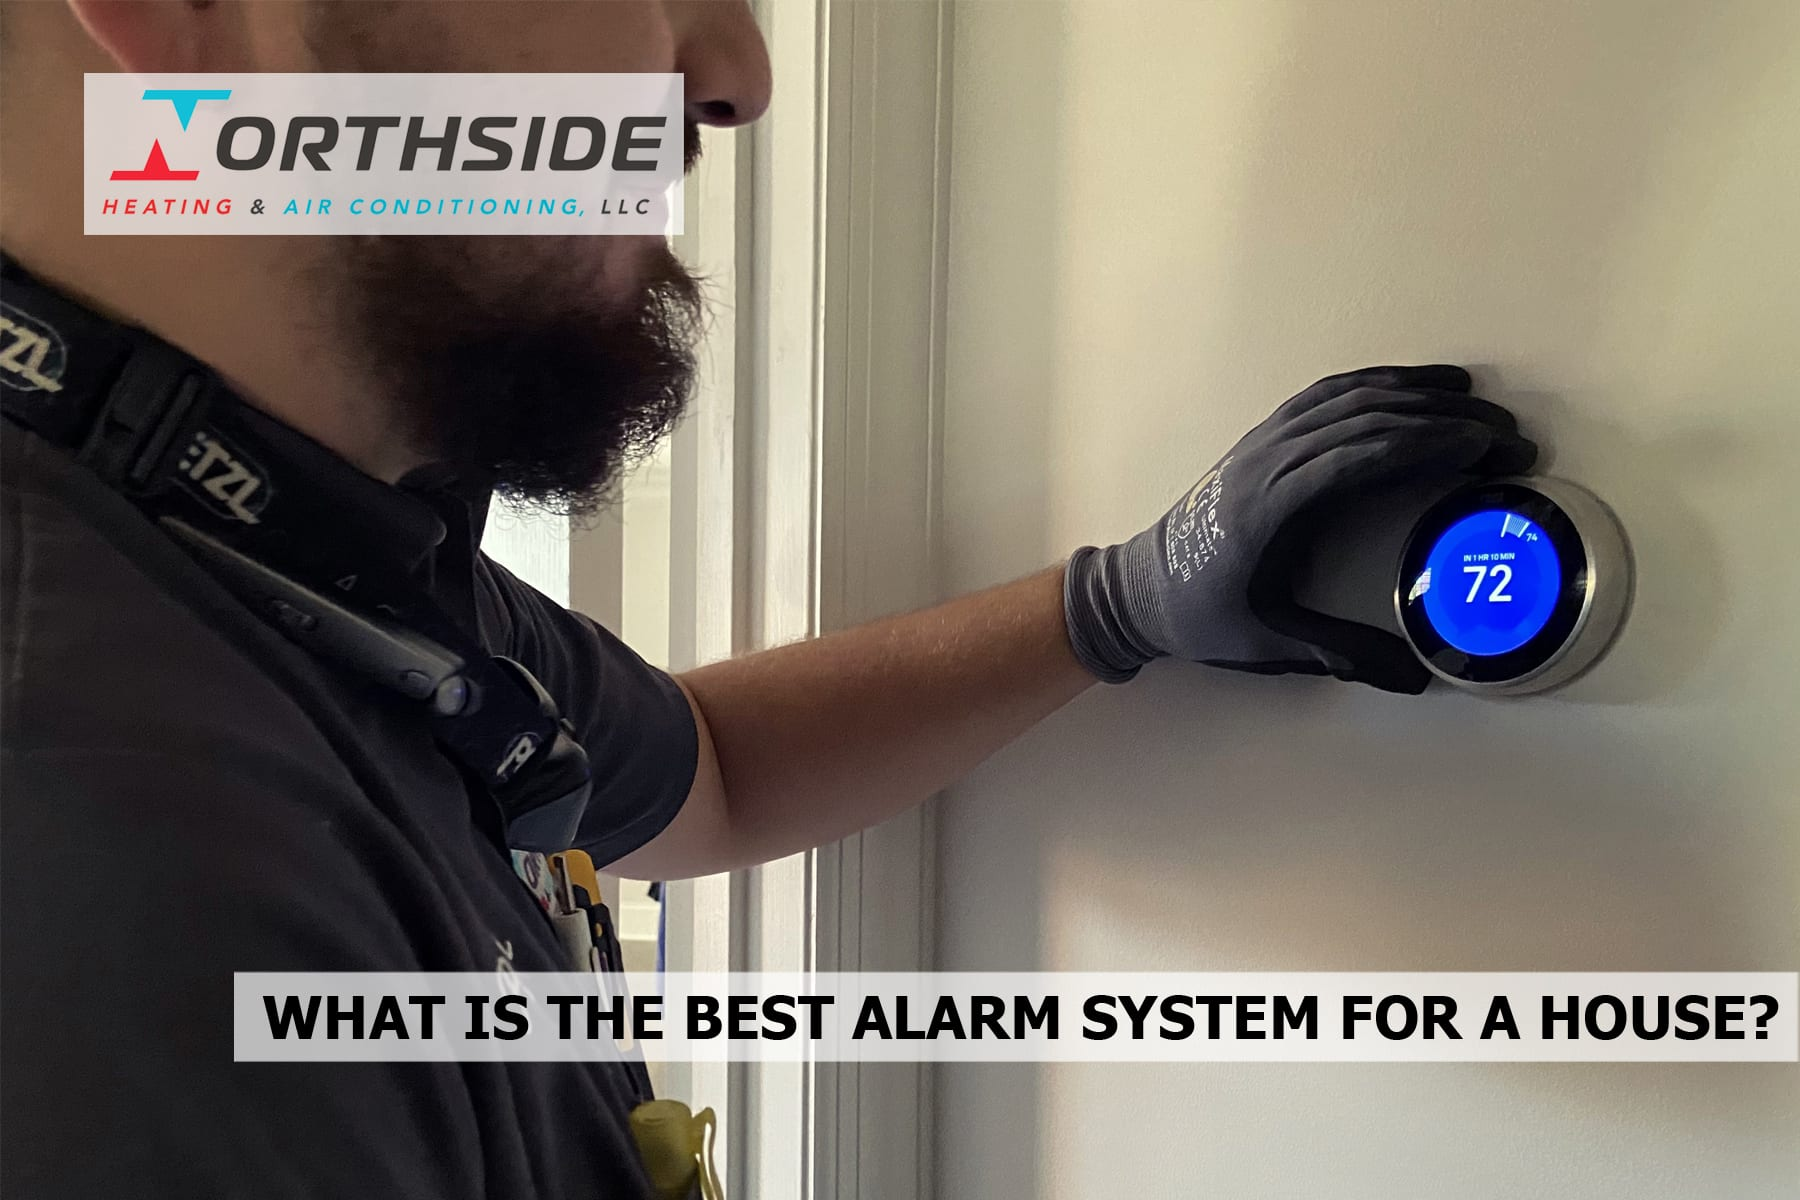 WHAT IS THE BEST ALARM SYSTEM FOR A HOUSE